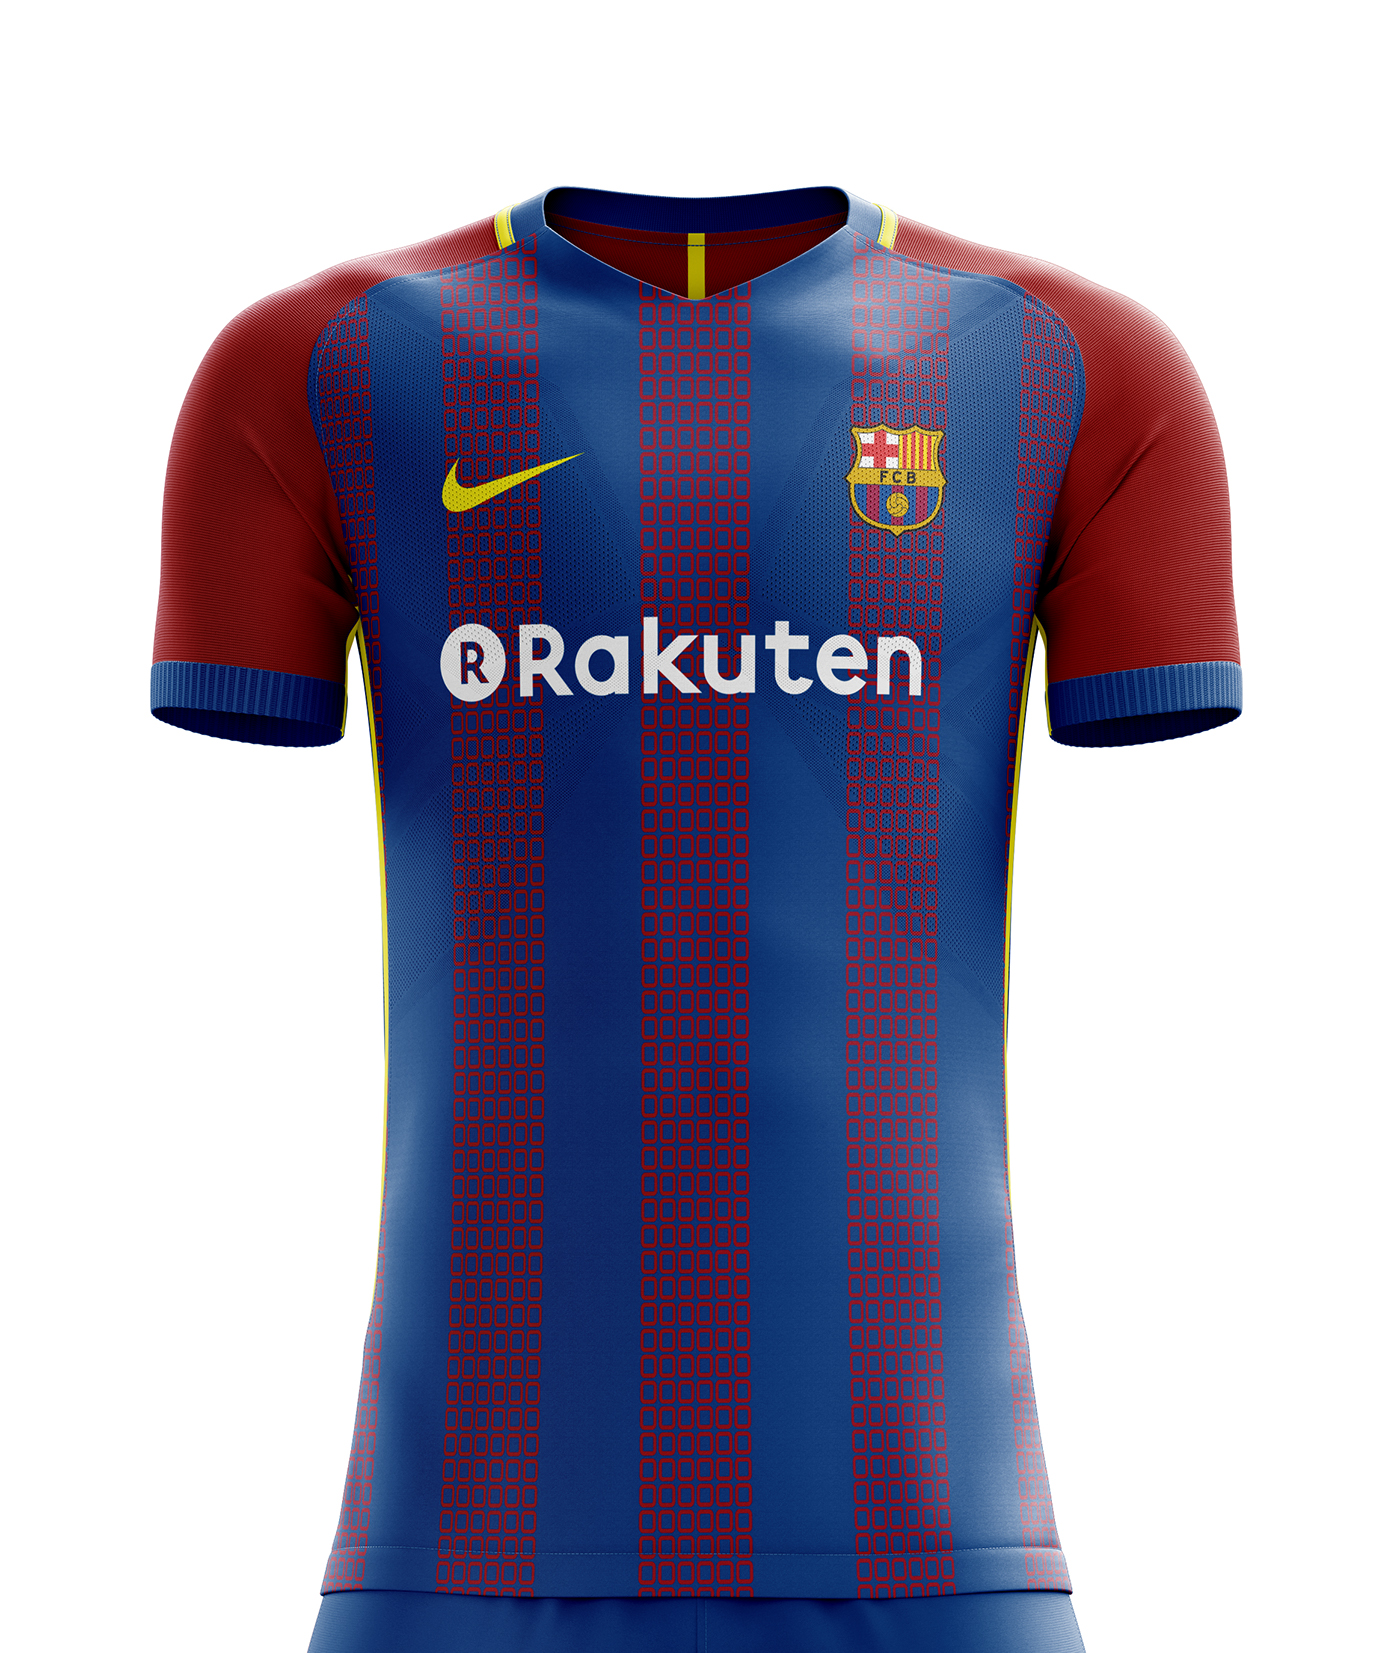 new products 81ad0 1bf08 Fc Barcelona Football Kit 18/19. on Behance